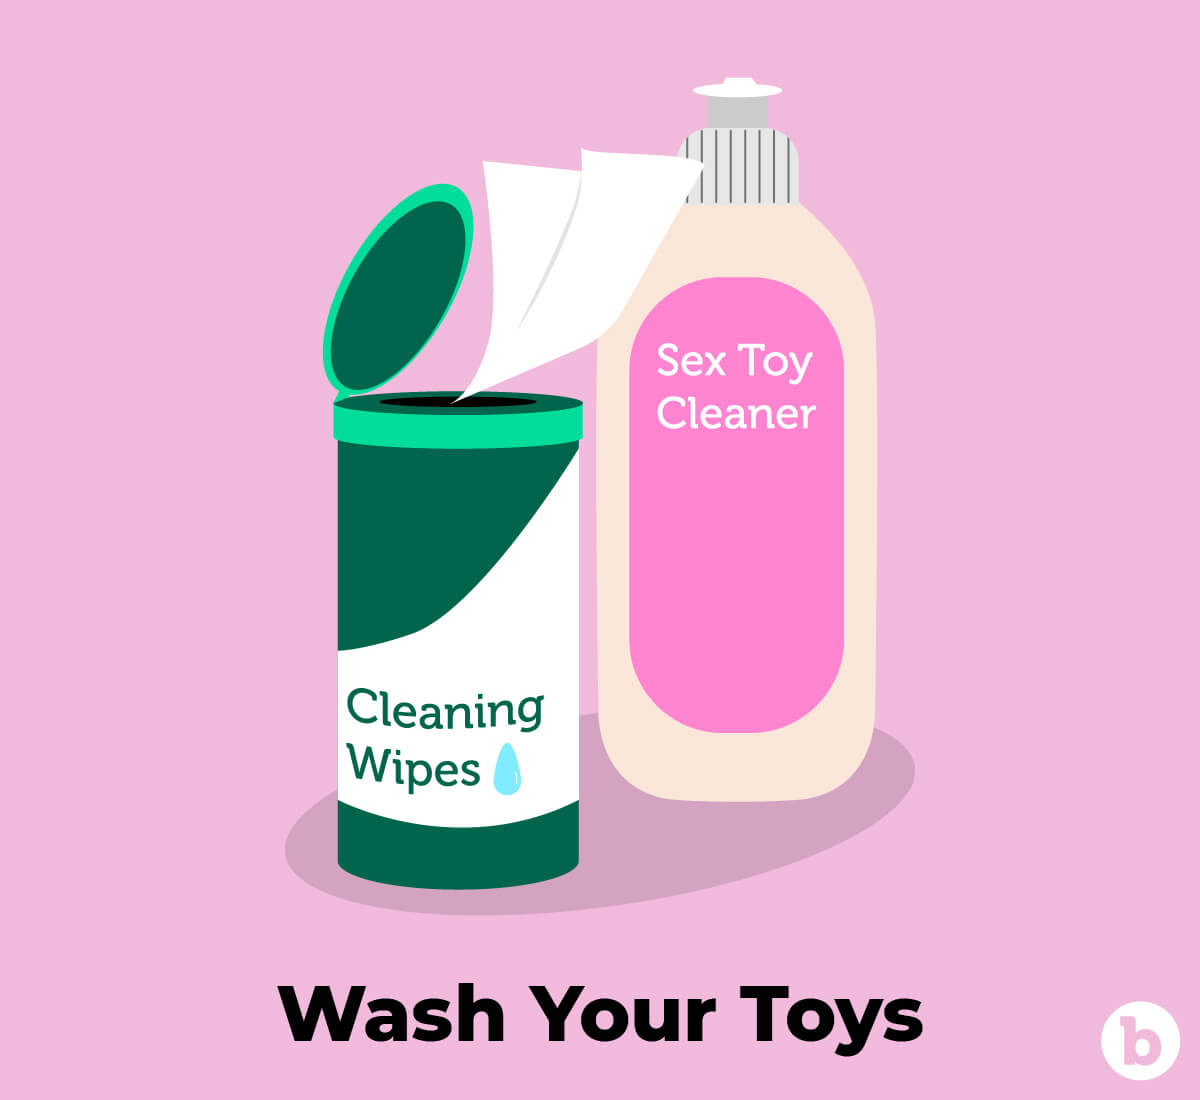 Washing your sex toys is equally as important as washing your hands